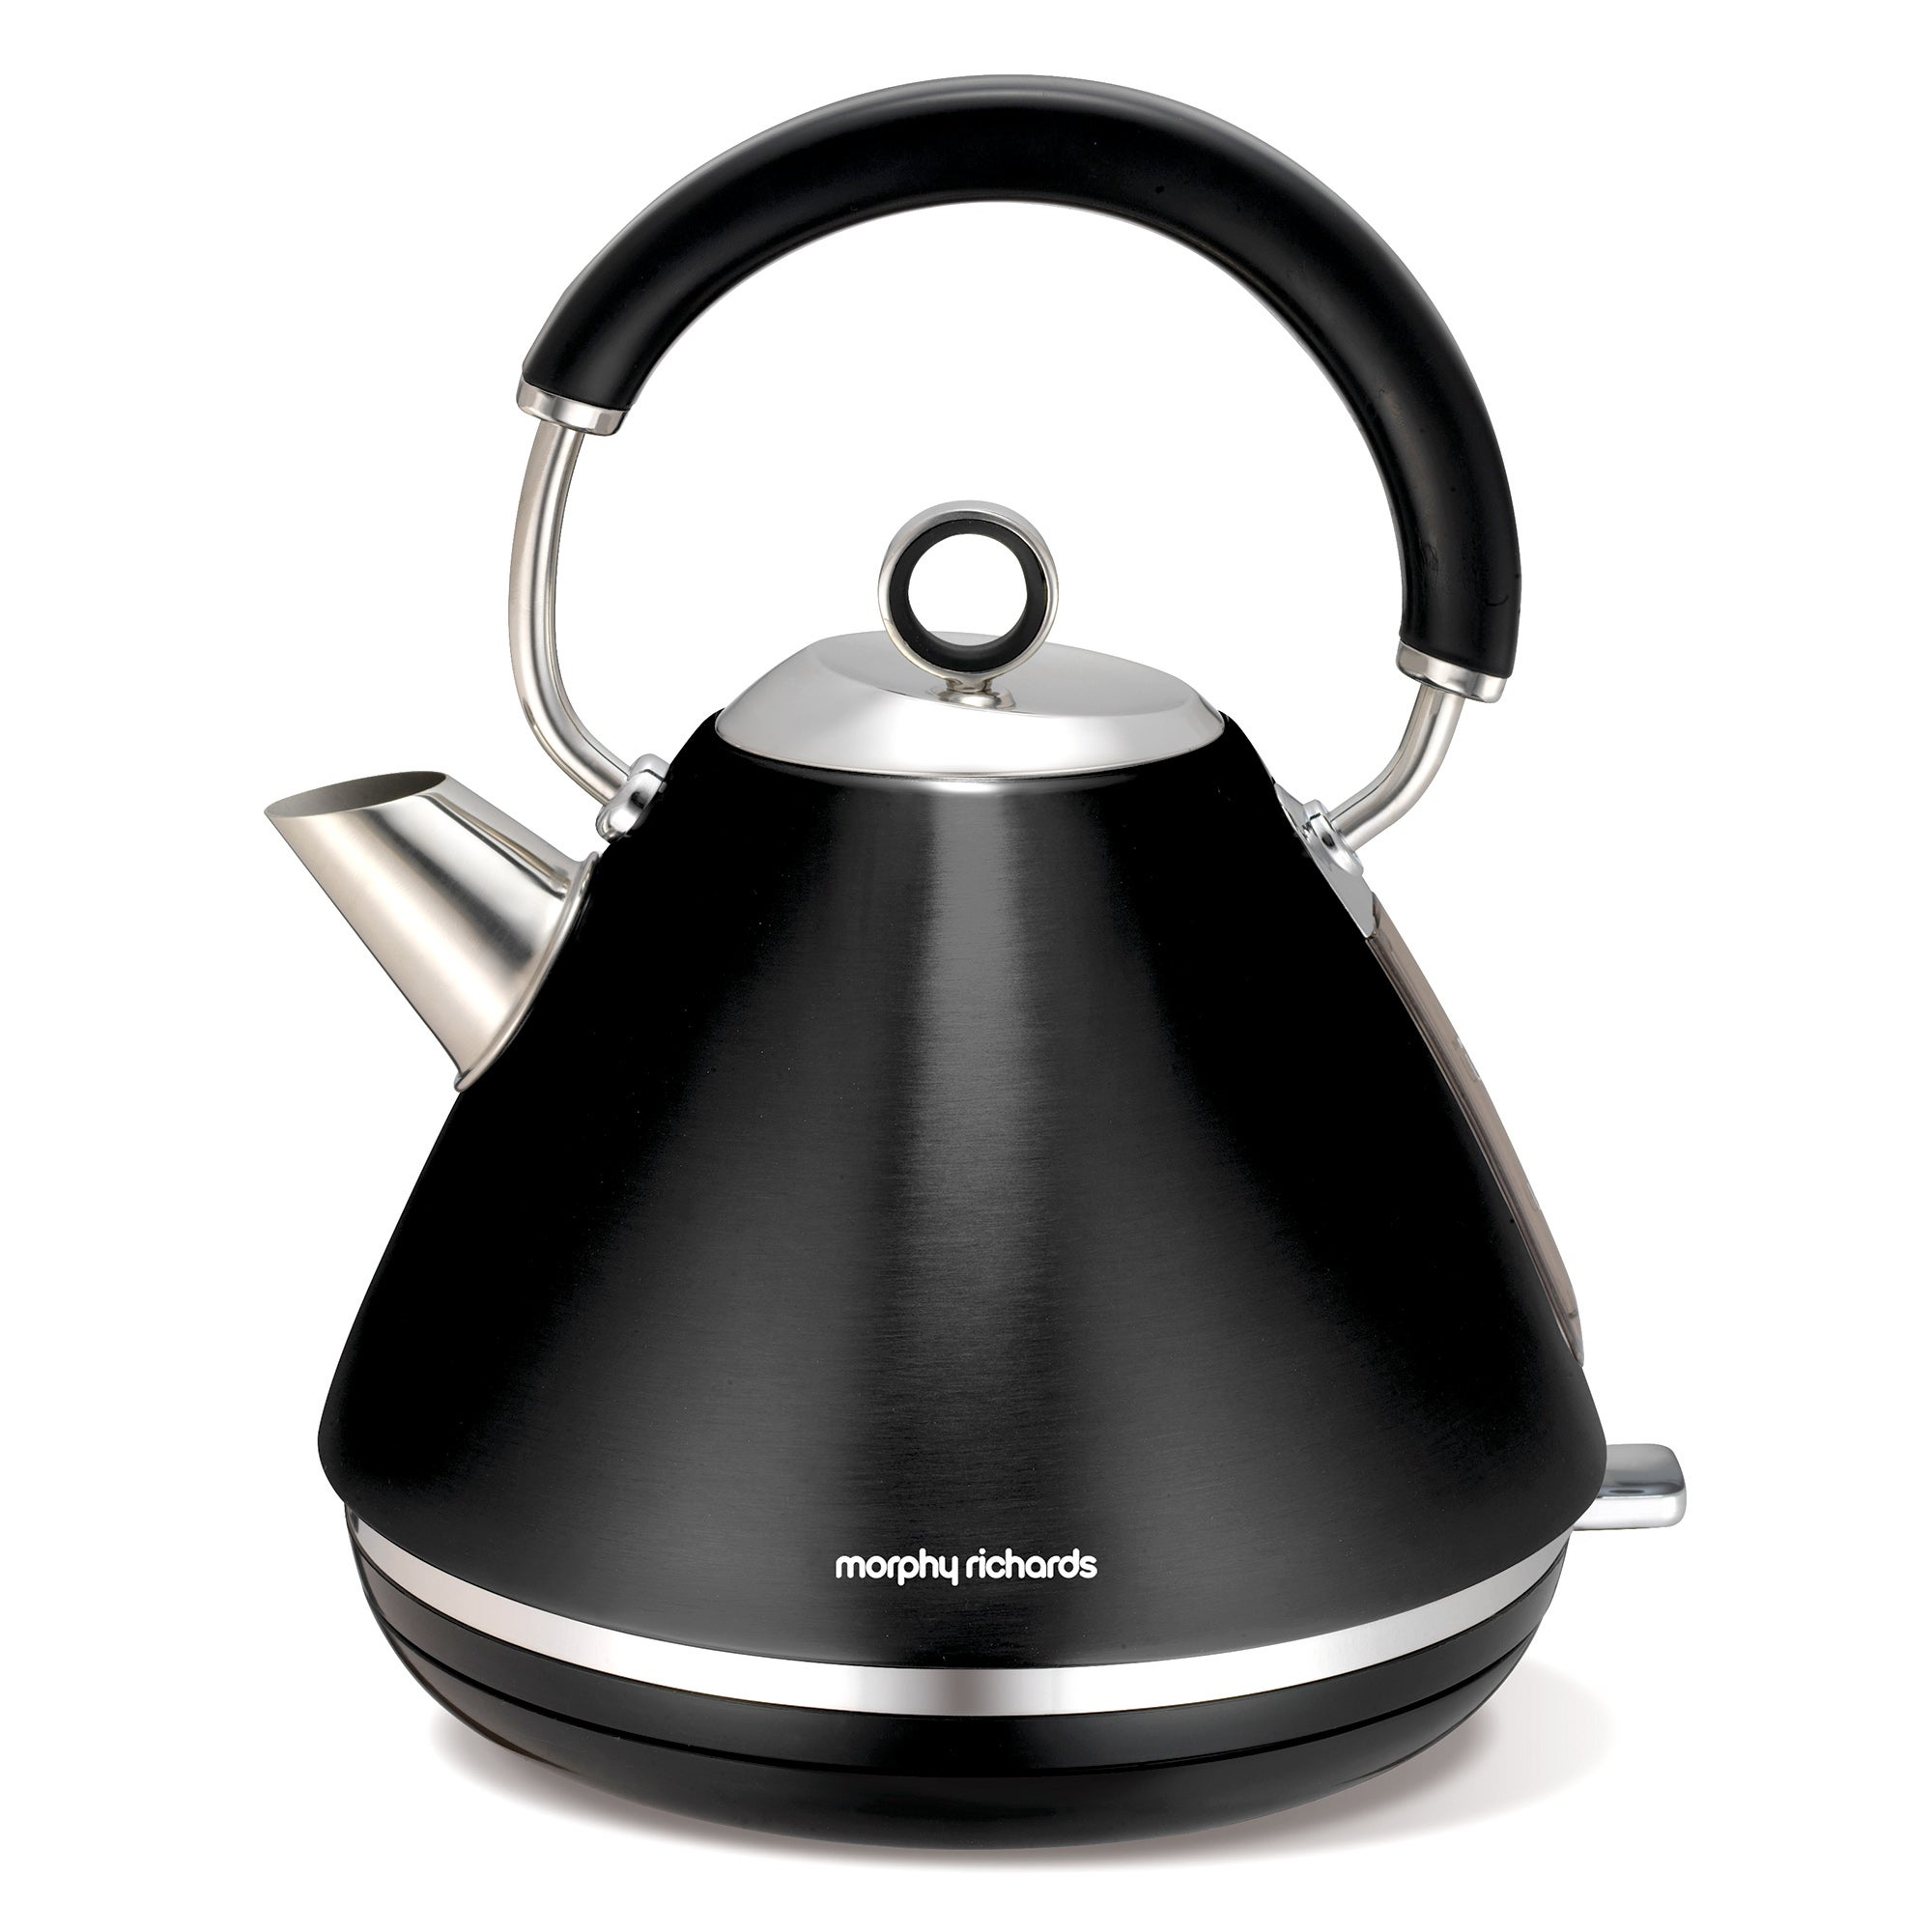 Morphy Richards Accents 102002 Black Traditional Kettle